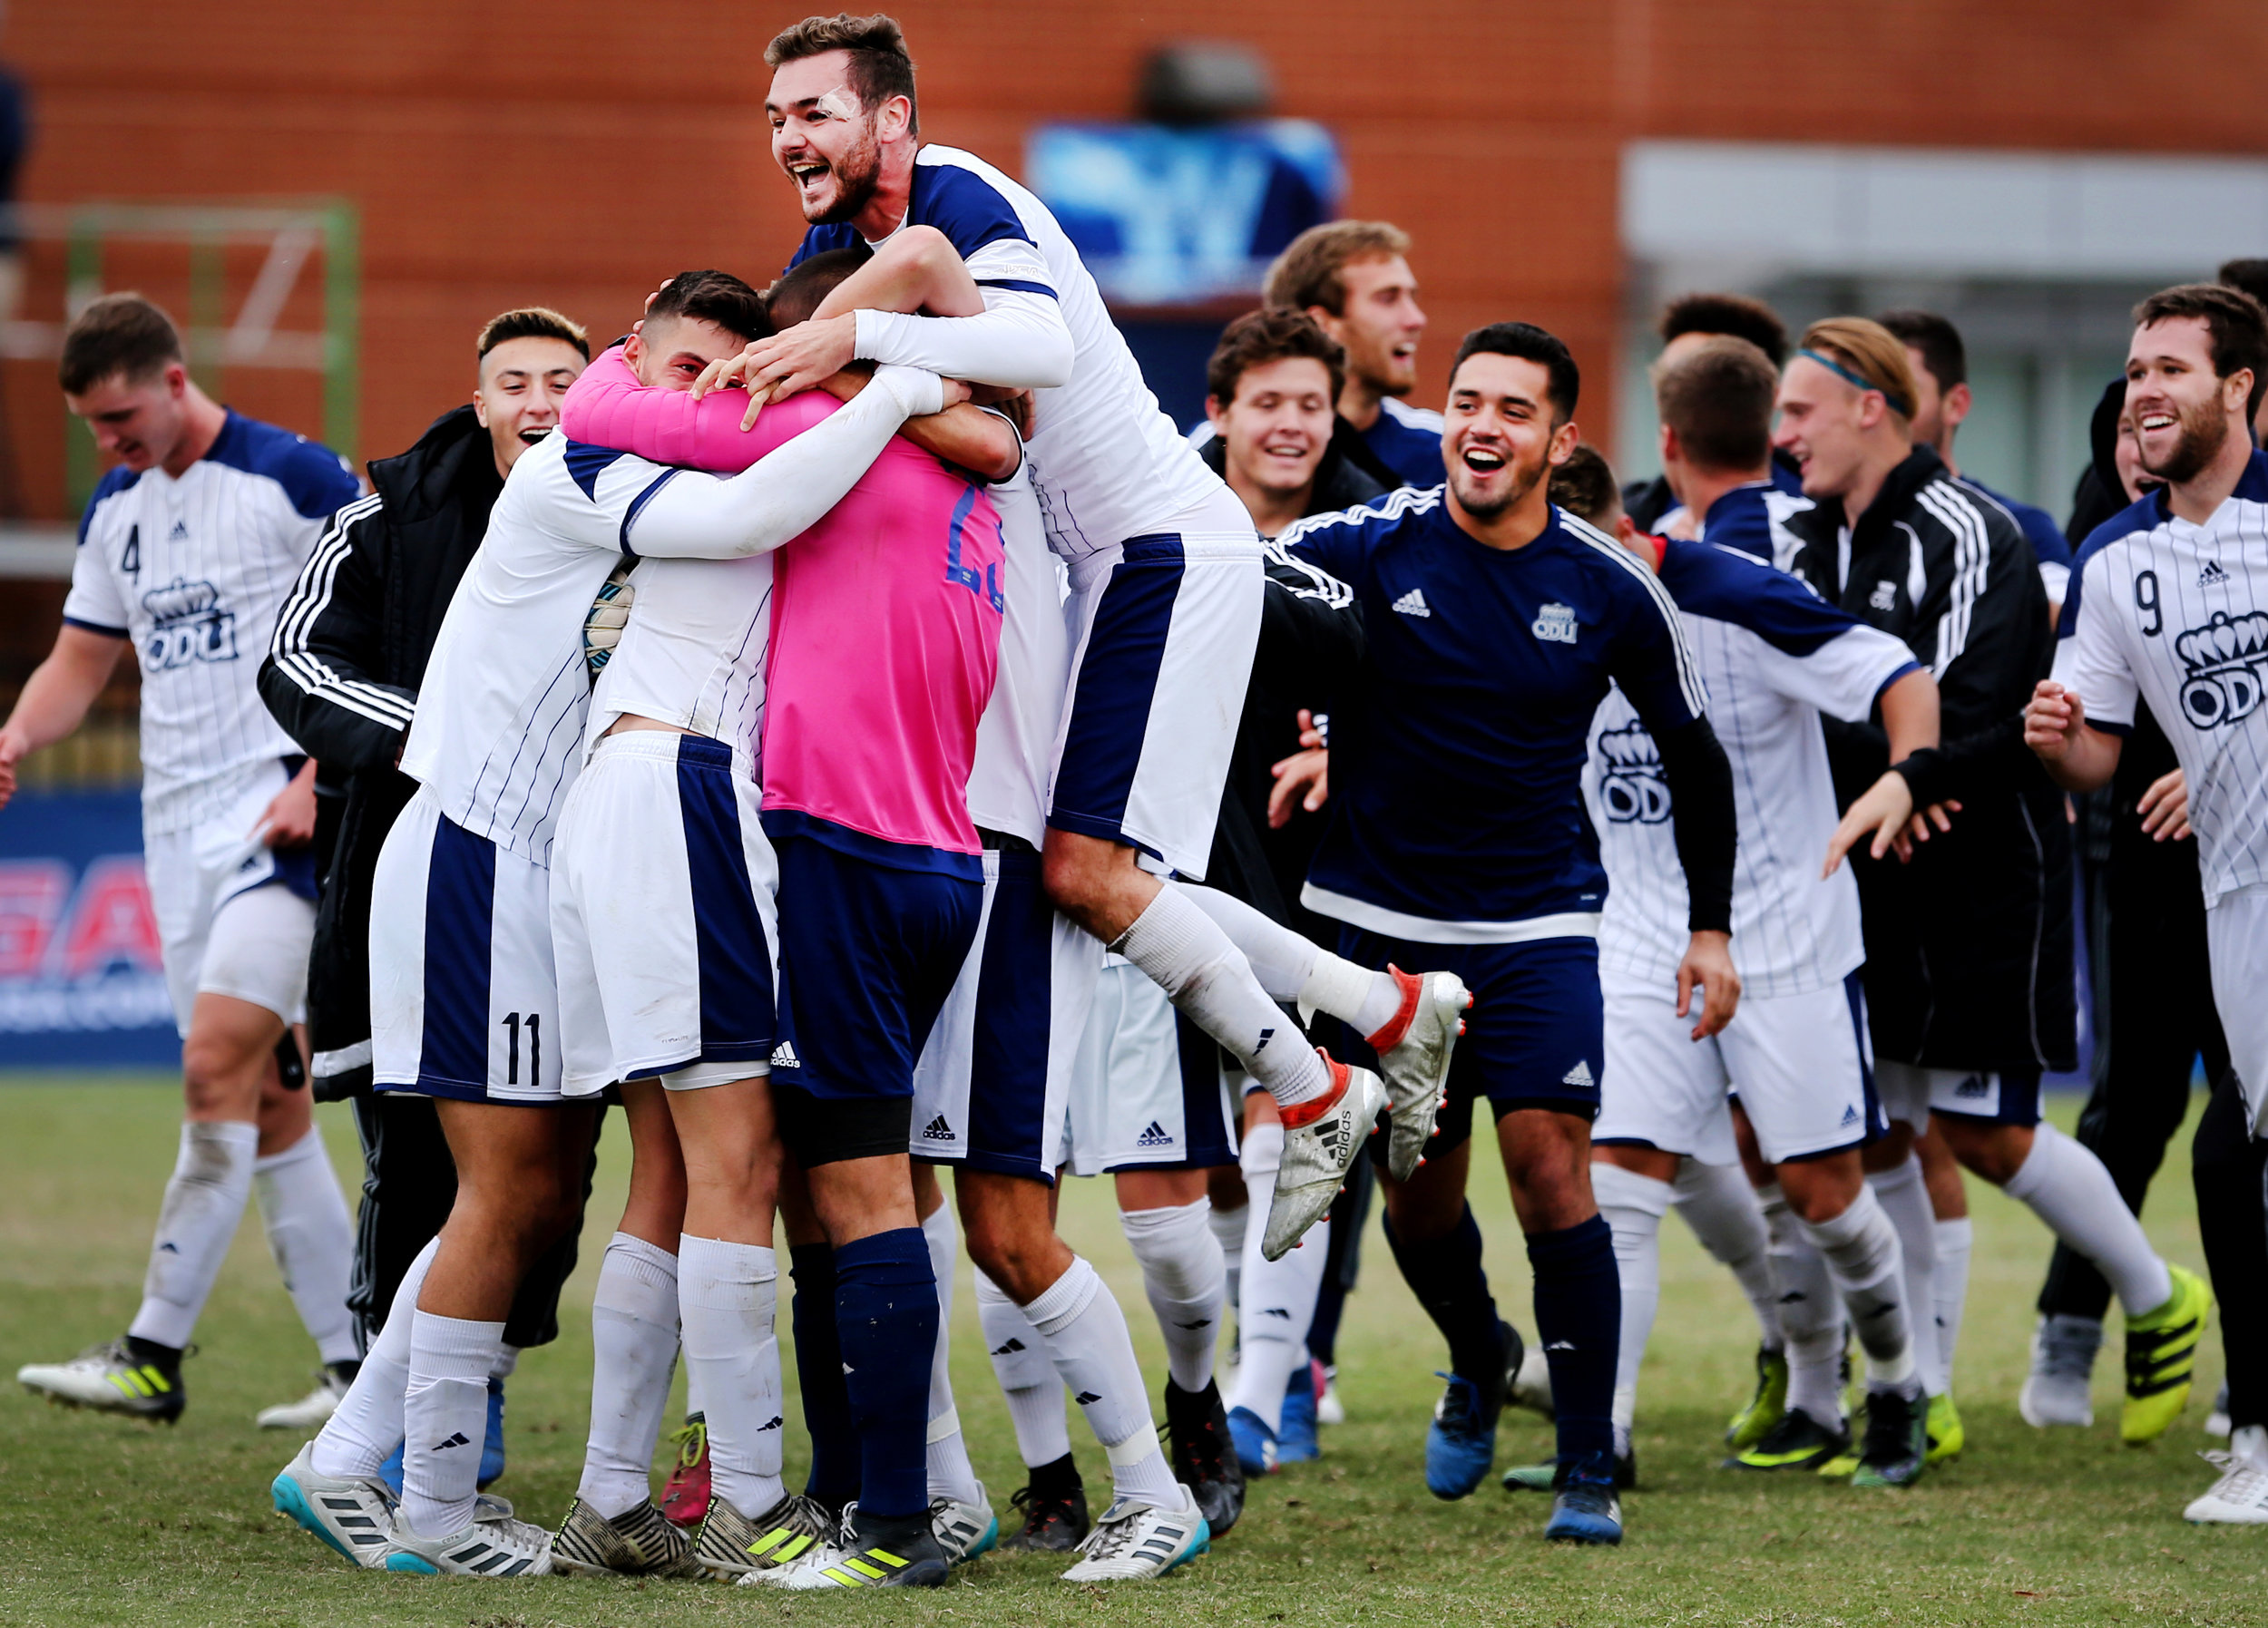 Old Dominion teammates celebrate their 1-0 win over Charlotte to claim the C-USA soccer championship, Sunday, Nov. 12, 2017 in Norfolk.